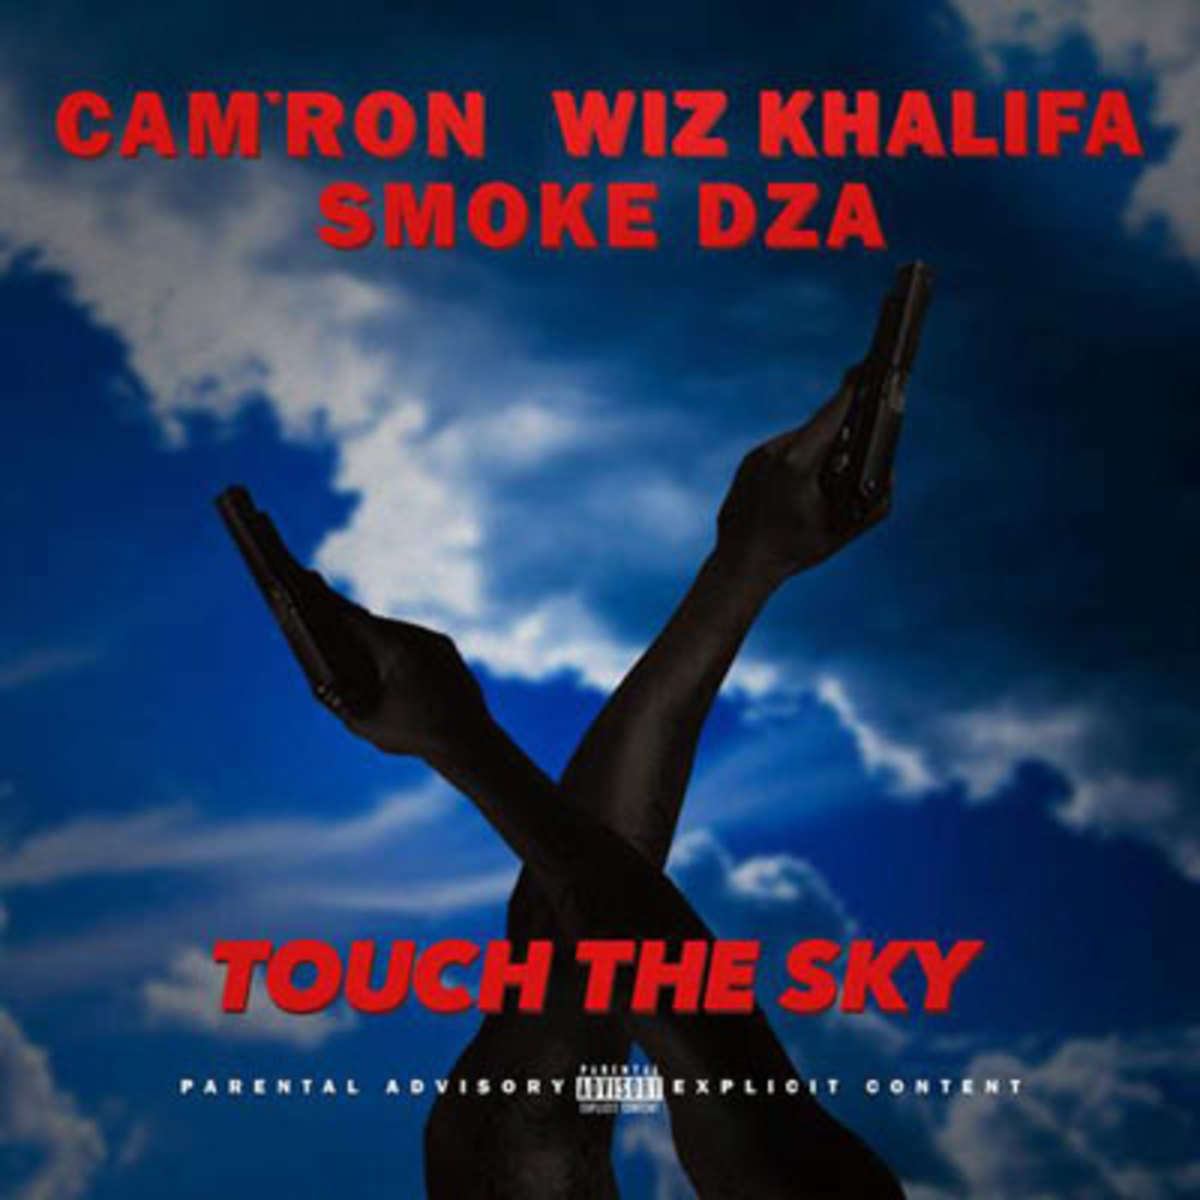 camron-touchthesky2.jpg